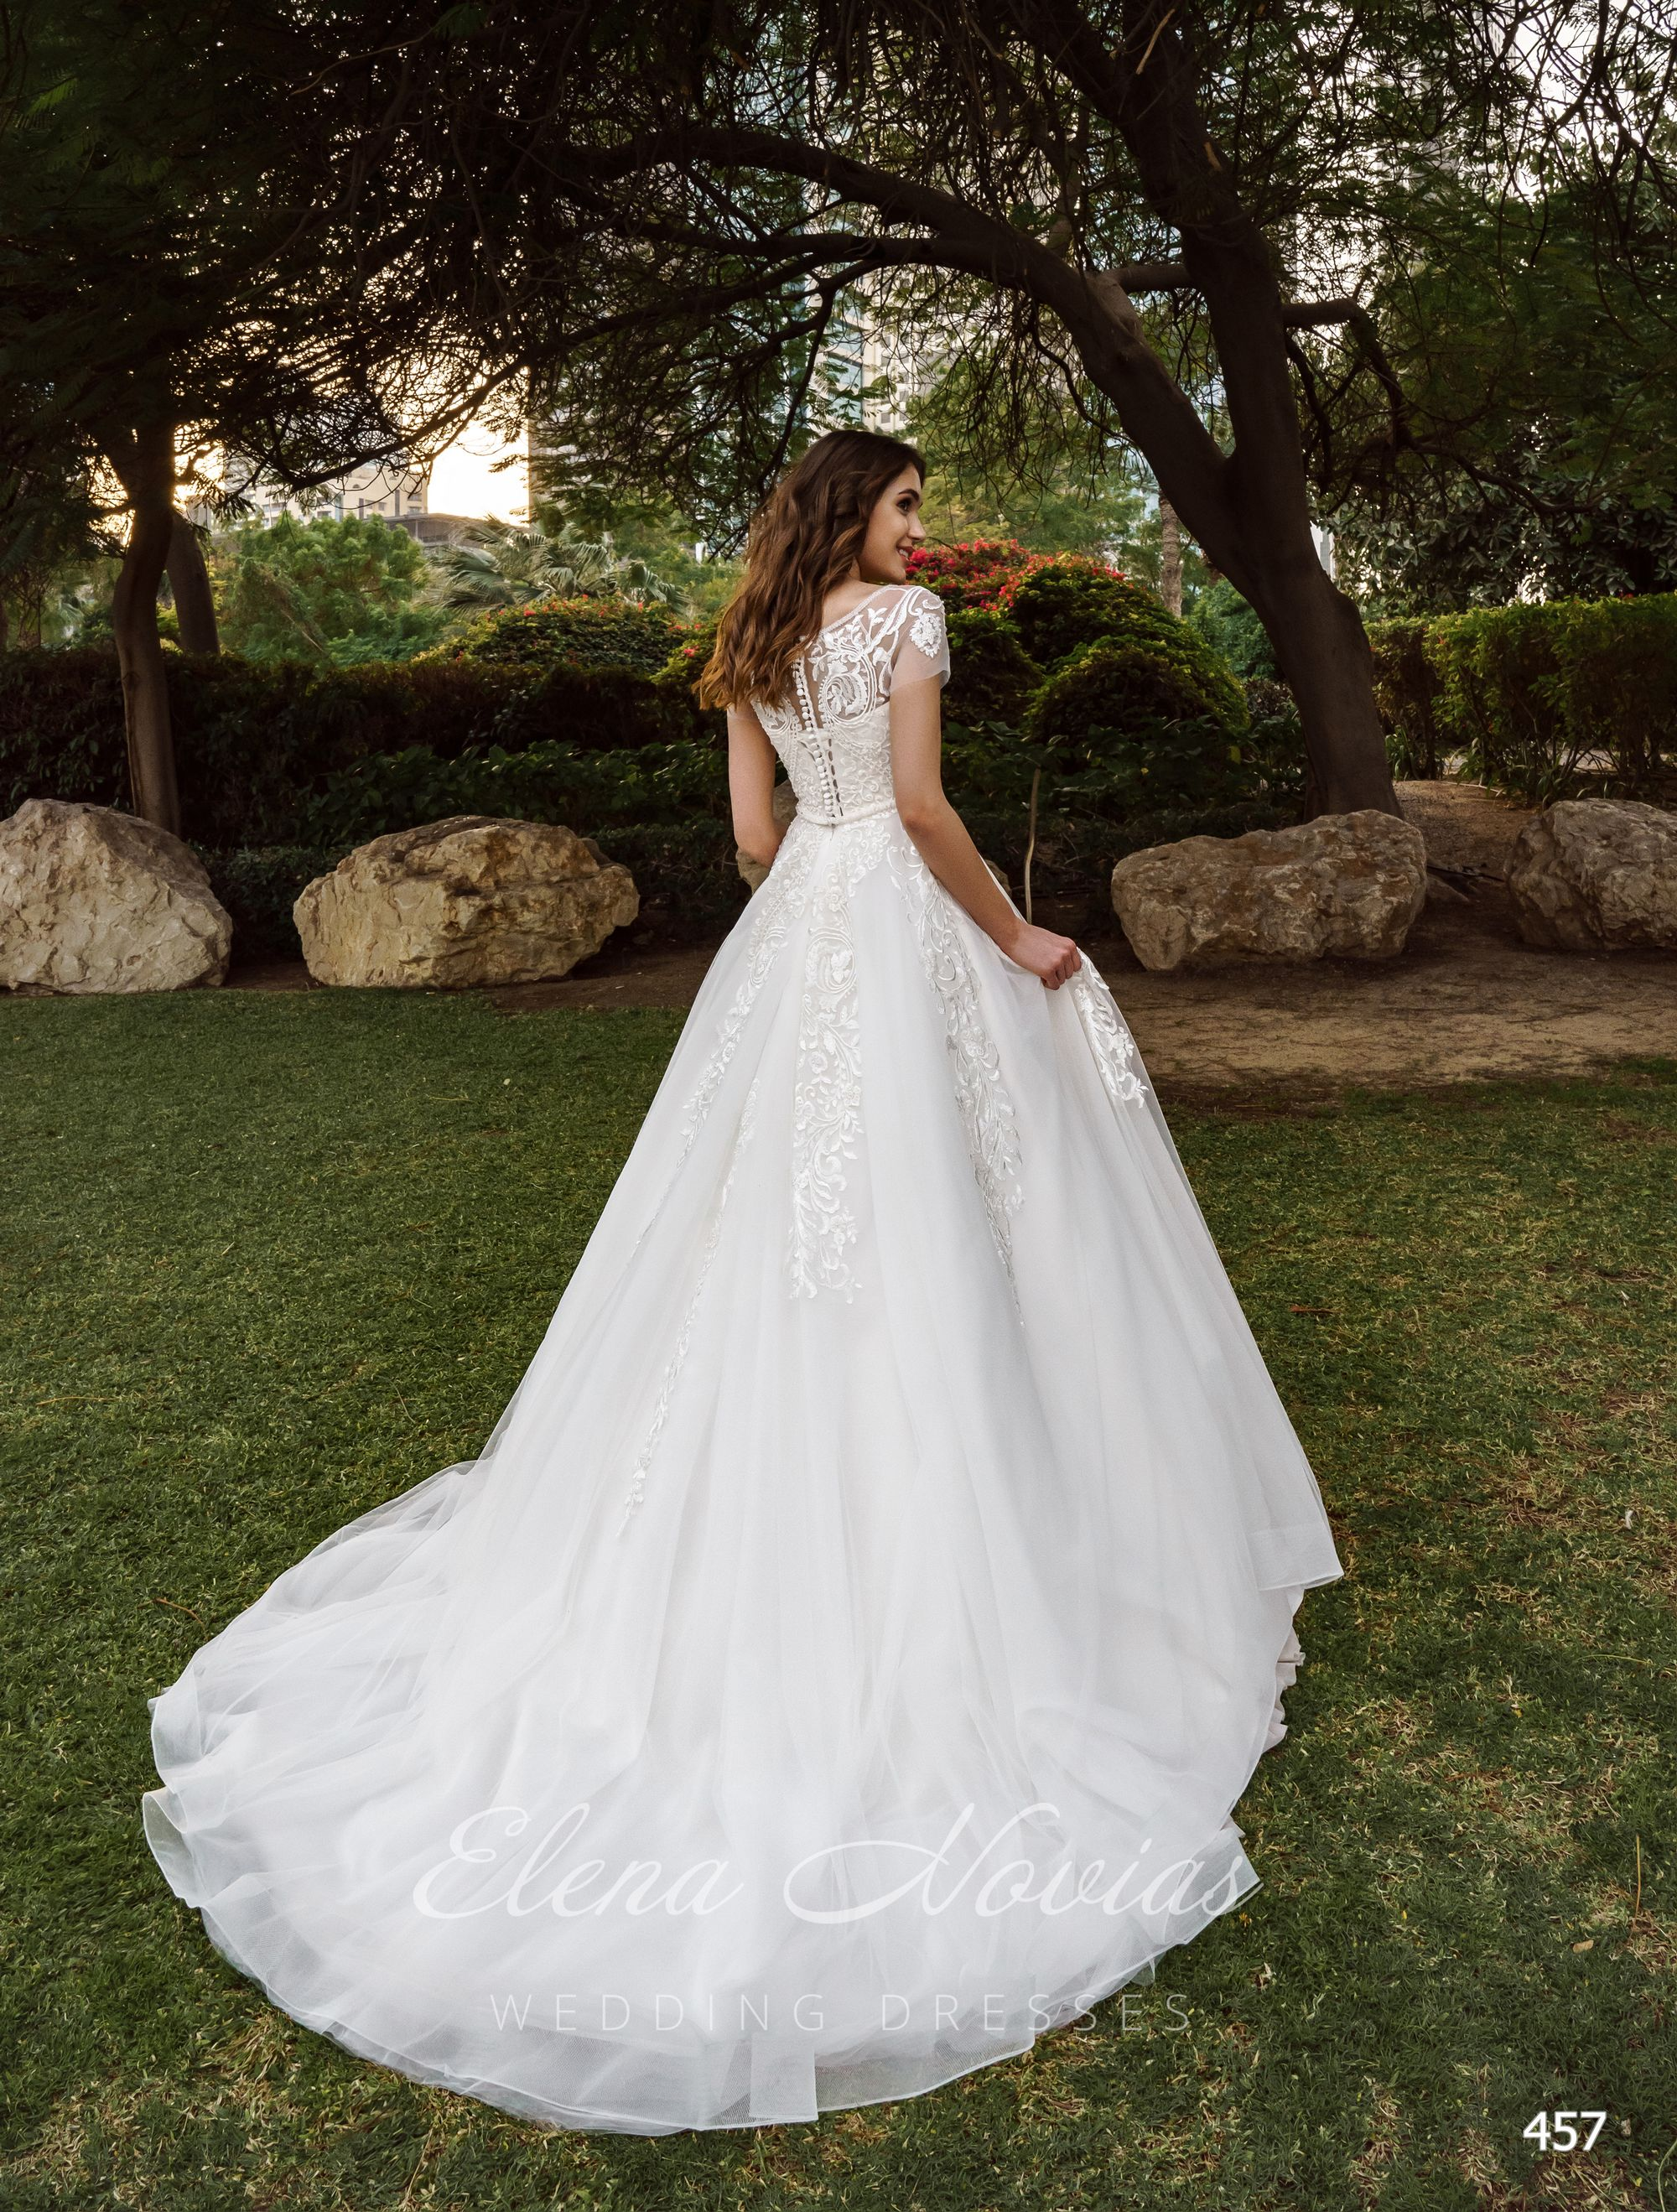 Wedding dresses 457 2